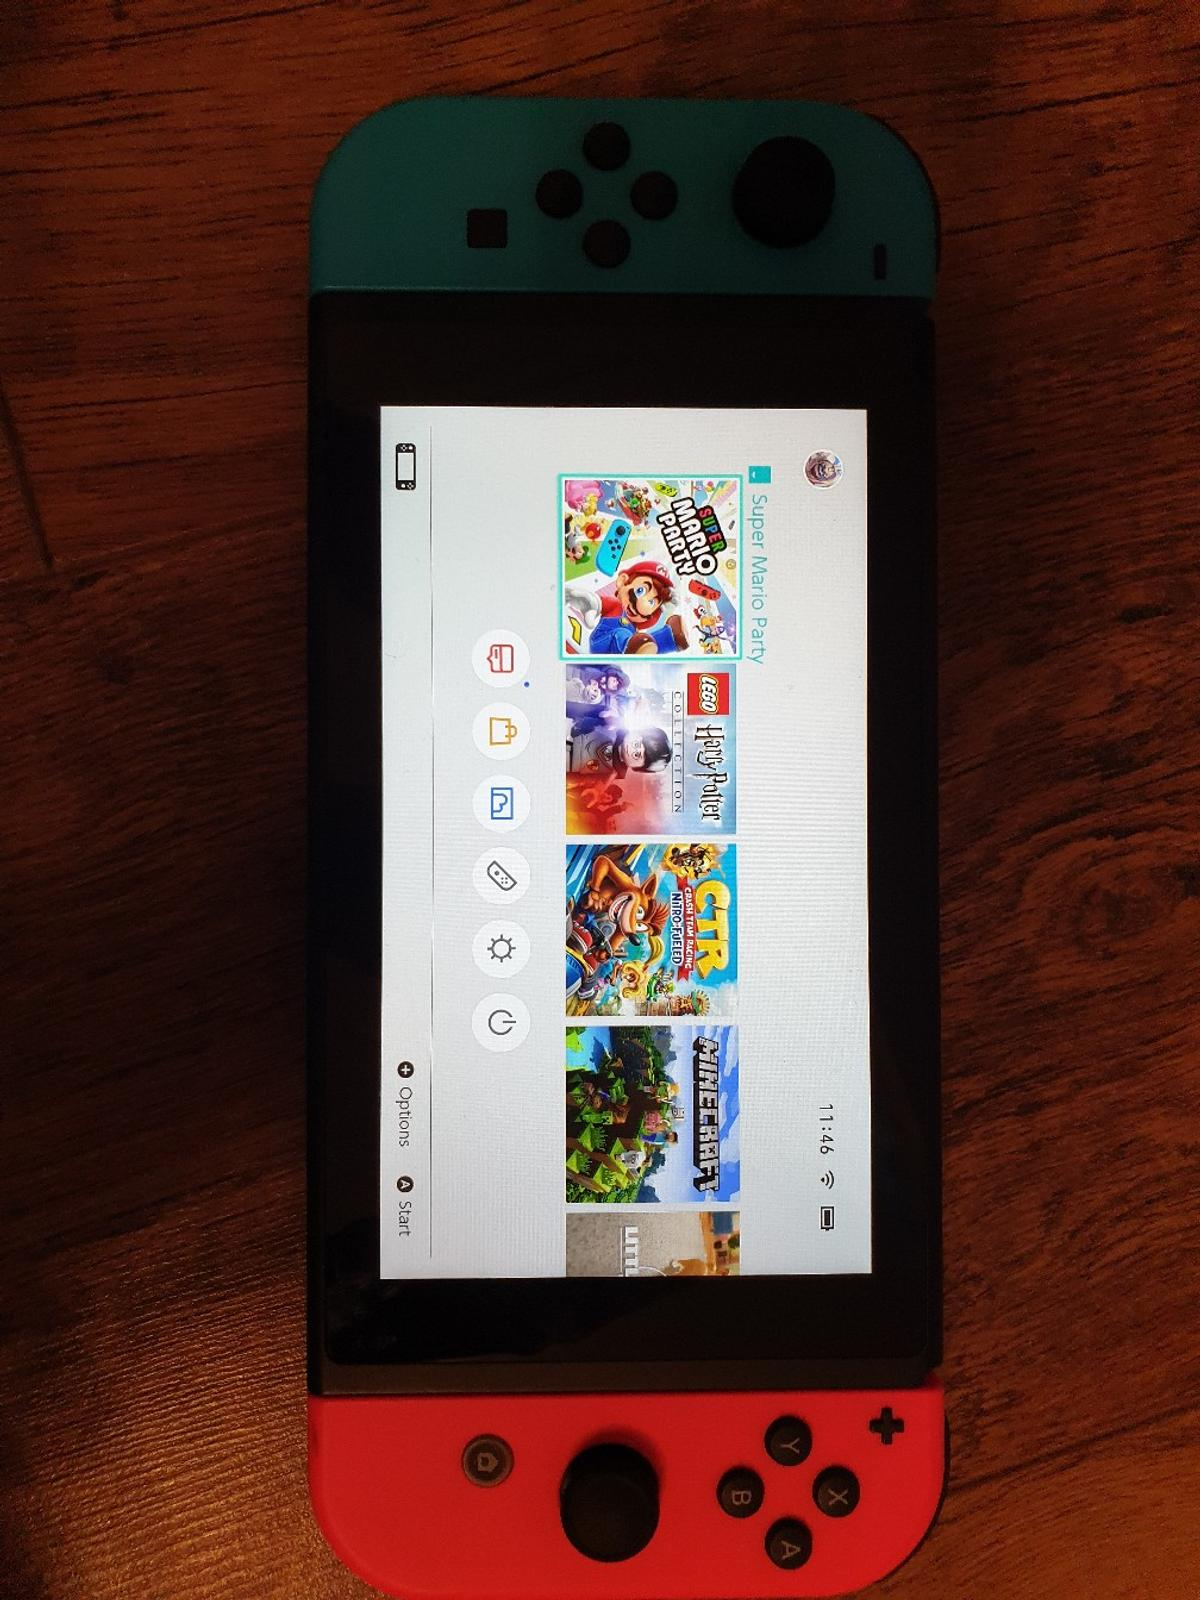 nintendo switch bundle comes with everything in photos. • Nintendo bag • Mario carry case • x6 games • Console • plus controllers  (no box)  basically brand new, son played with it about 4 times.  no offers.